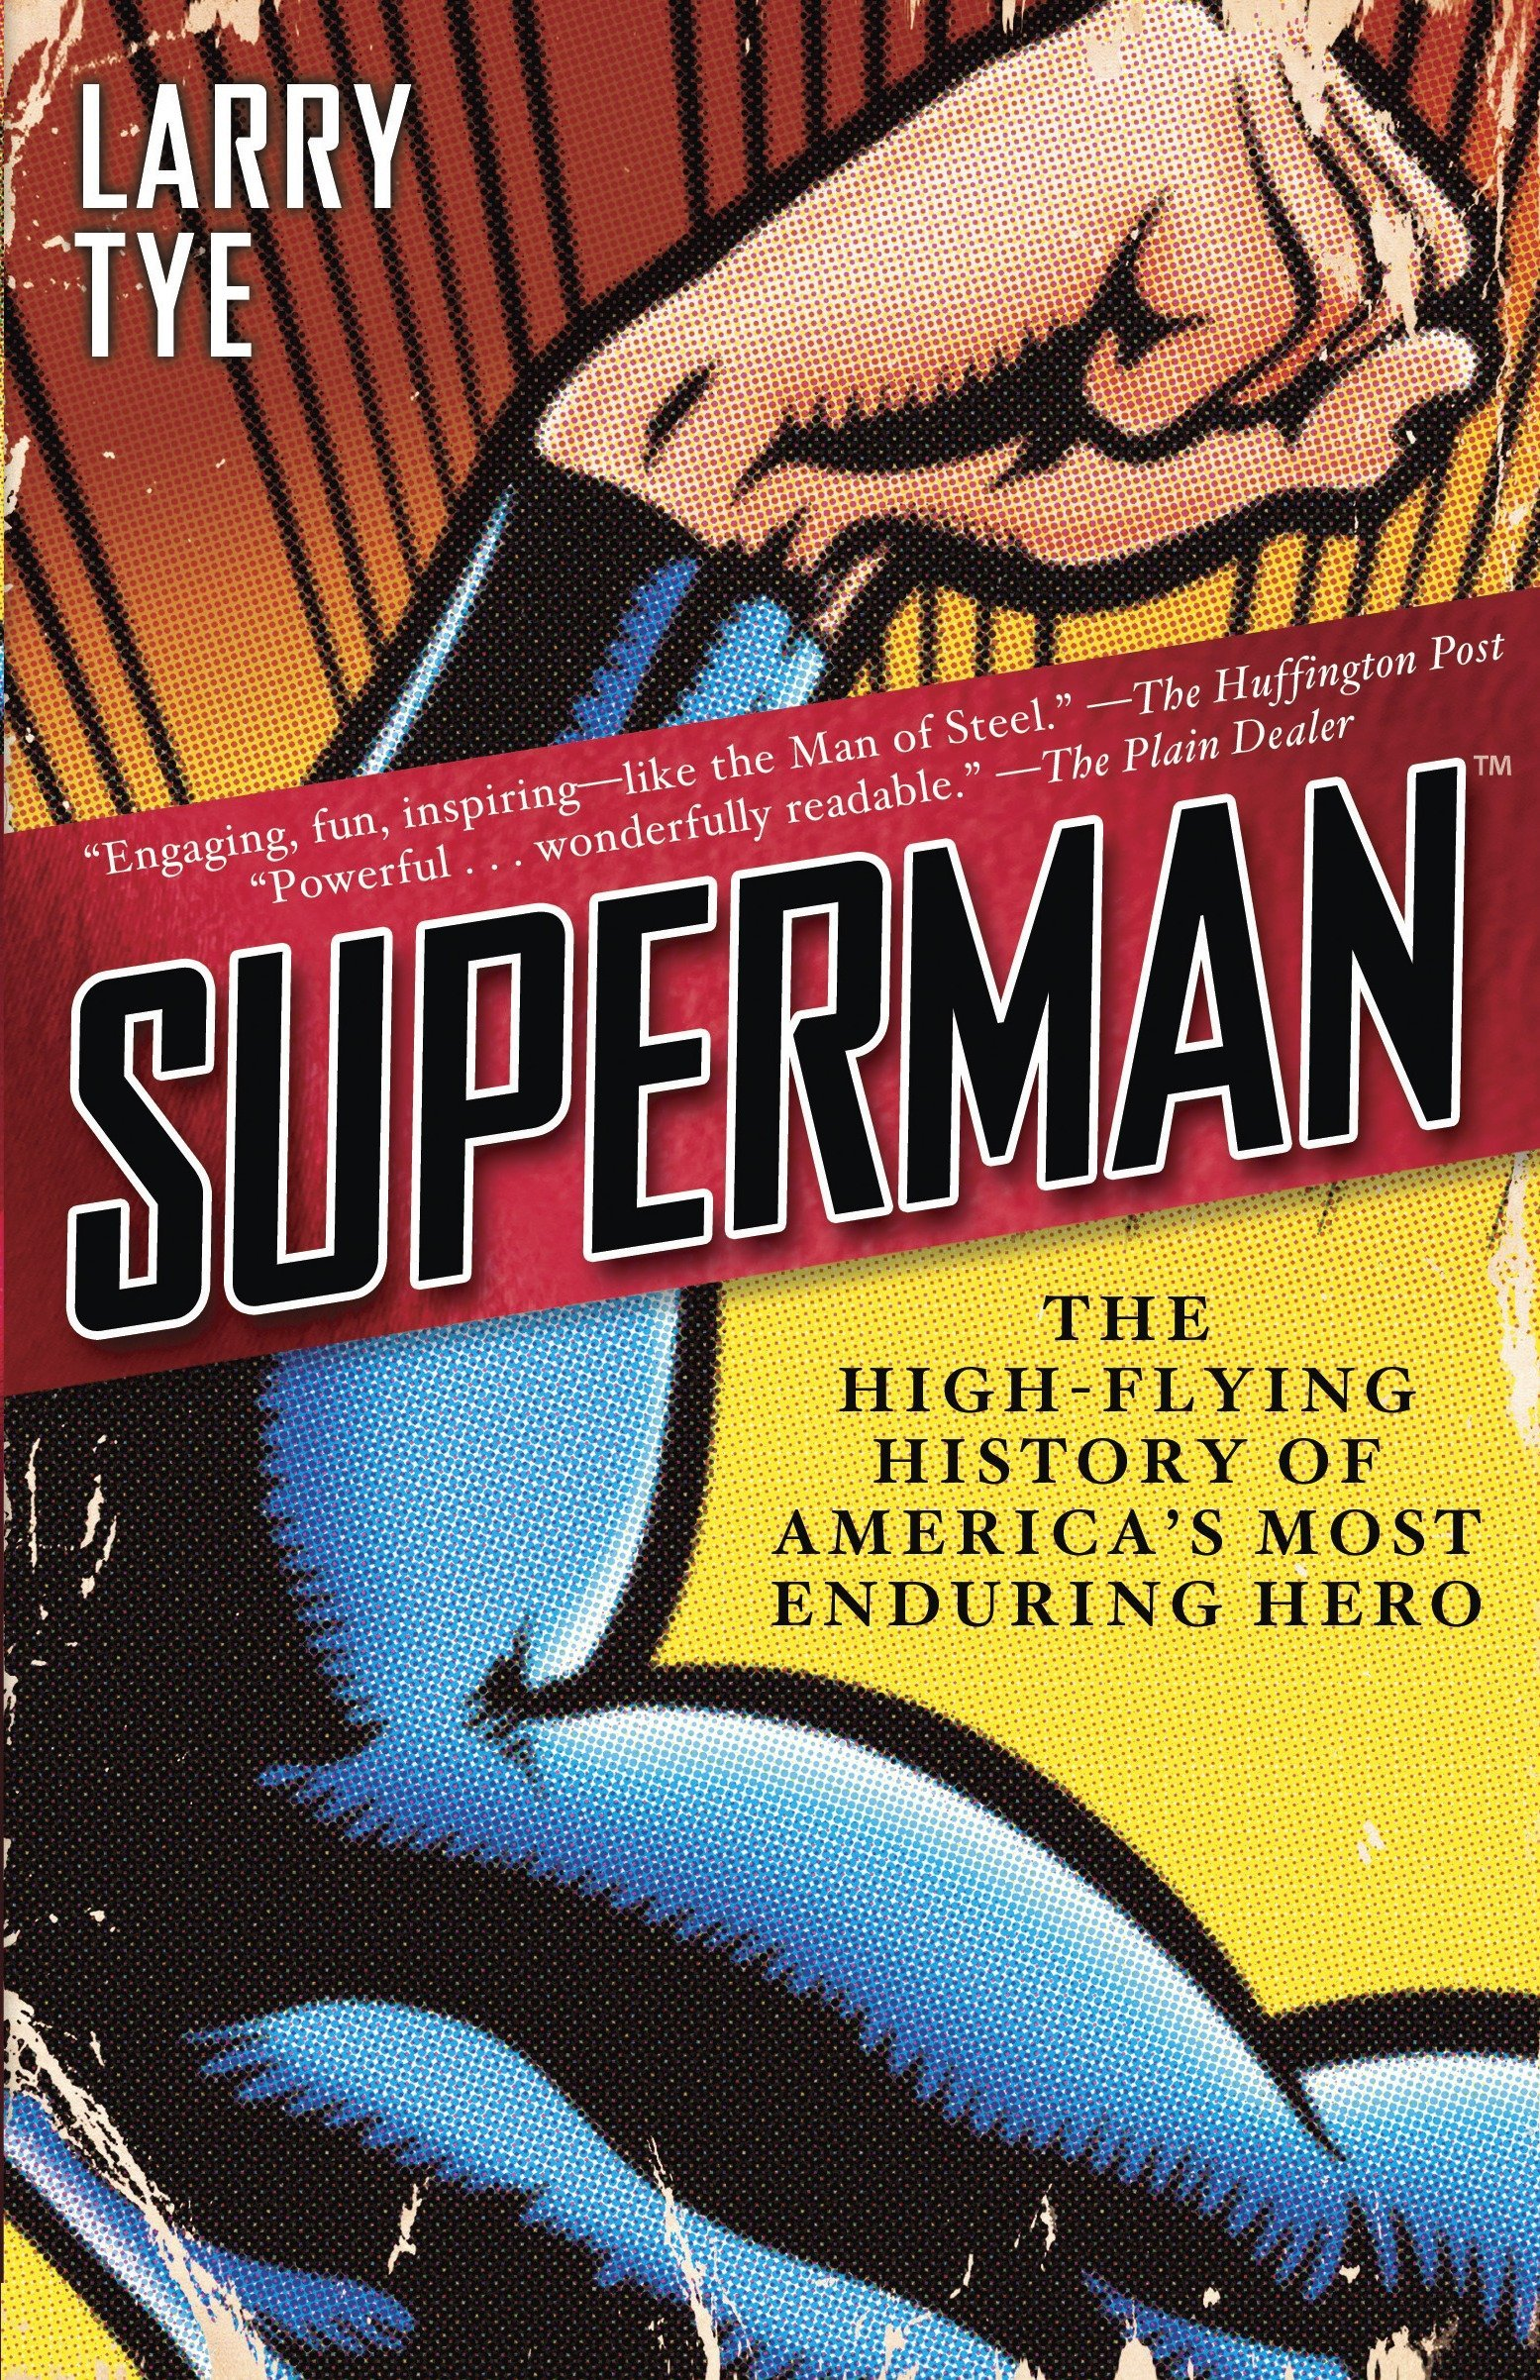 Amazon com: Superman: The High-Flying History of America's